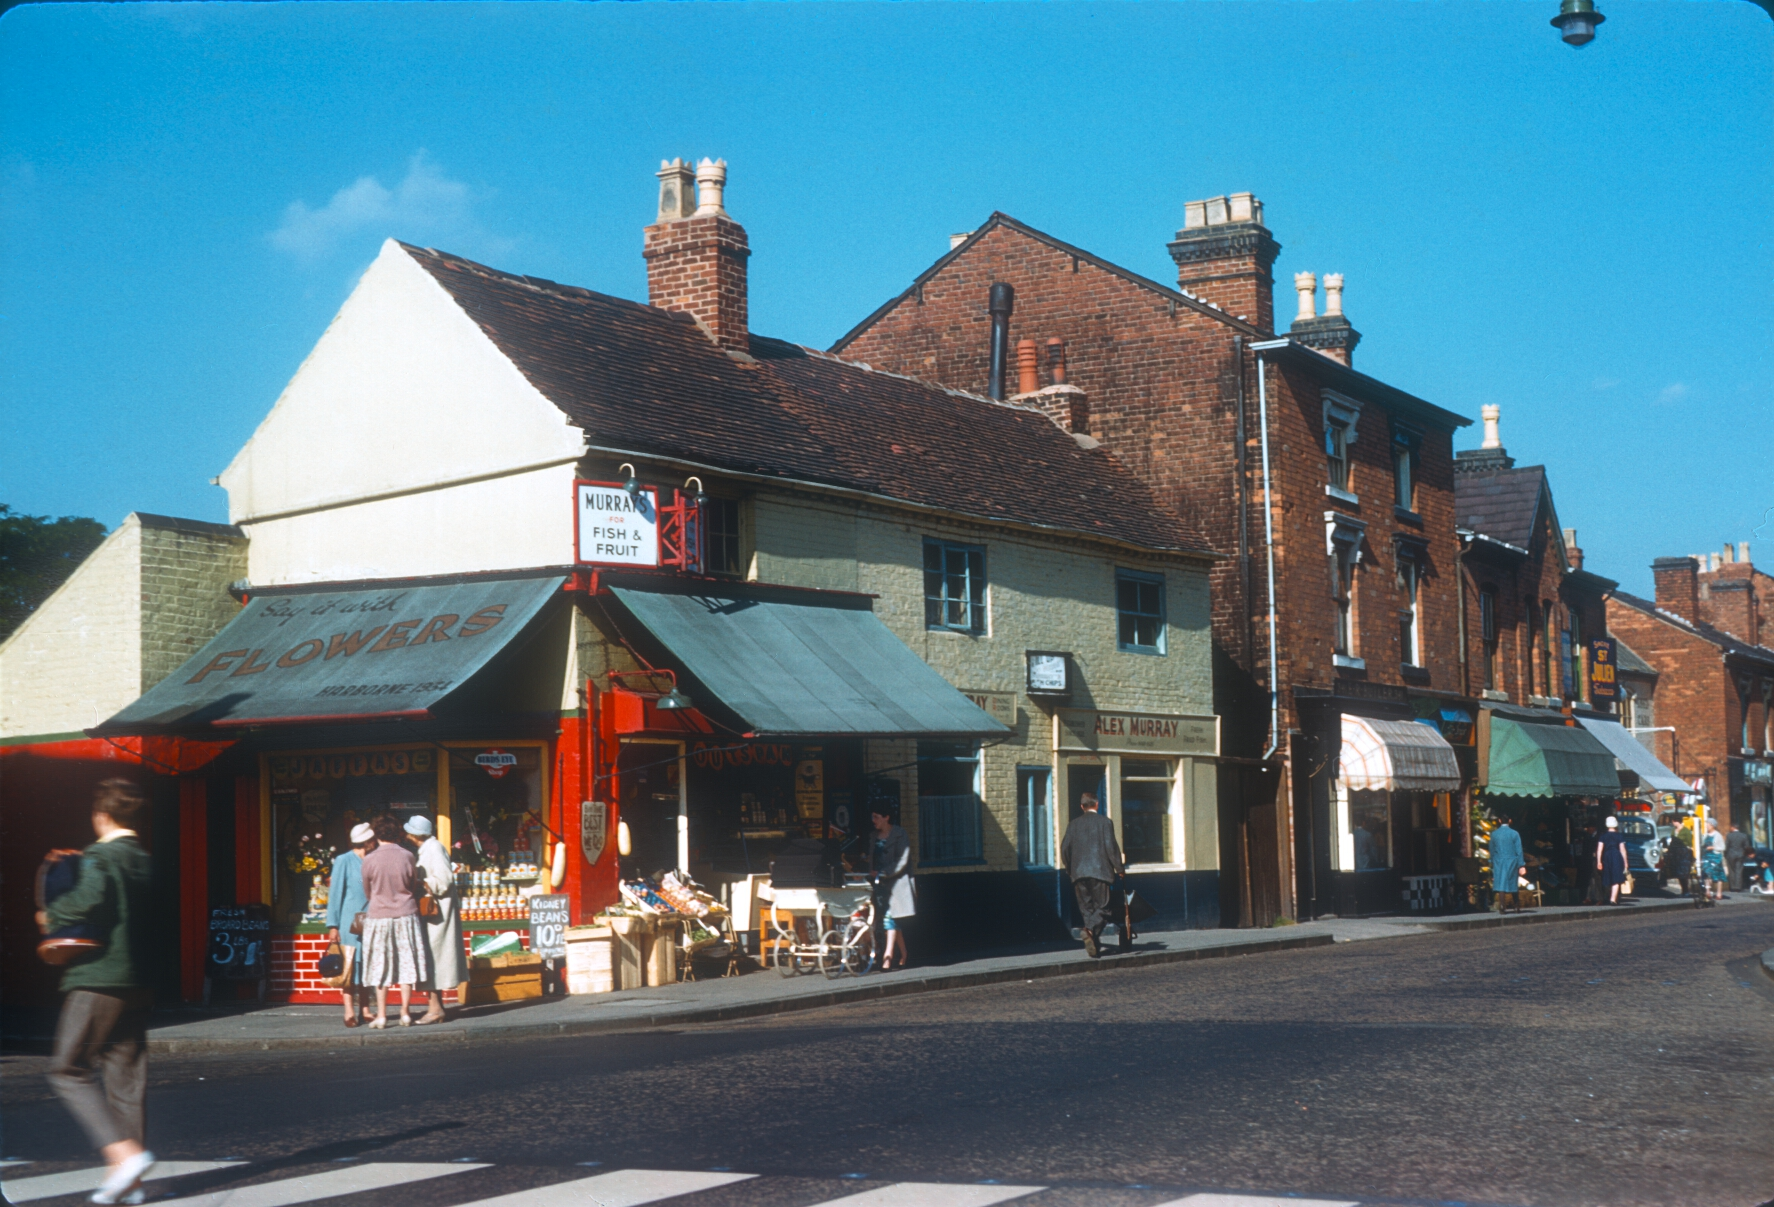 Harborne High Street - Corner of Serpentine Road. 17th August 1961